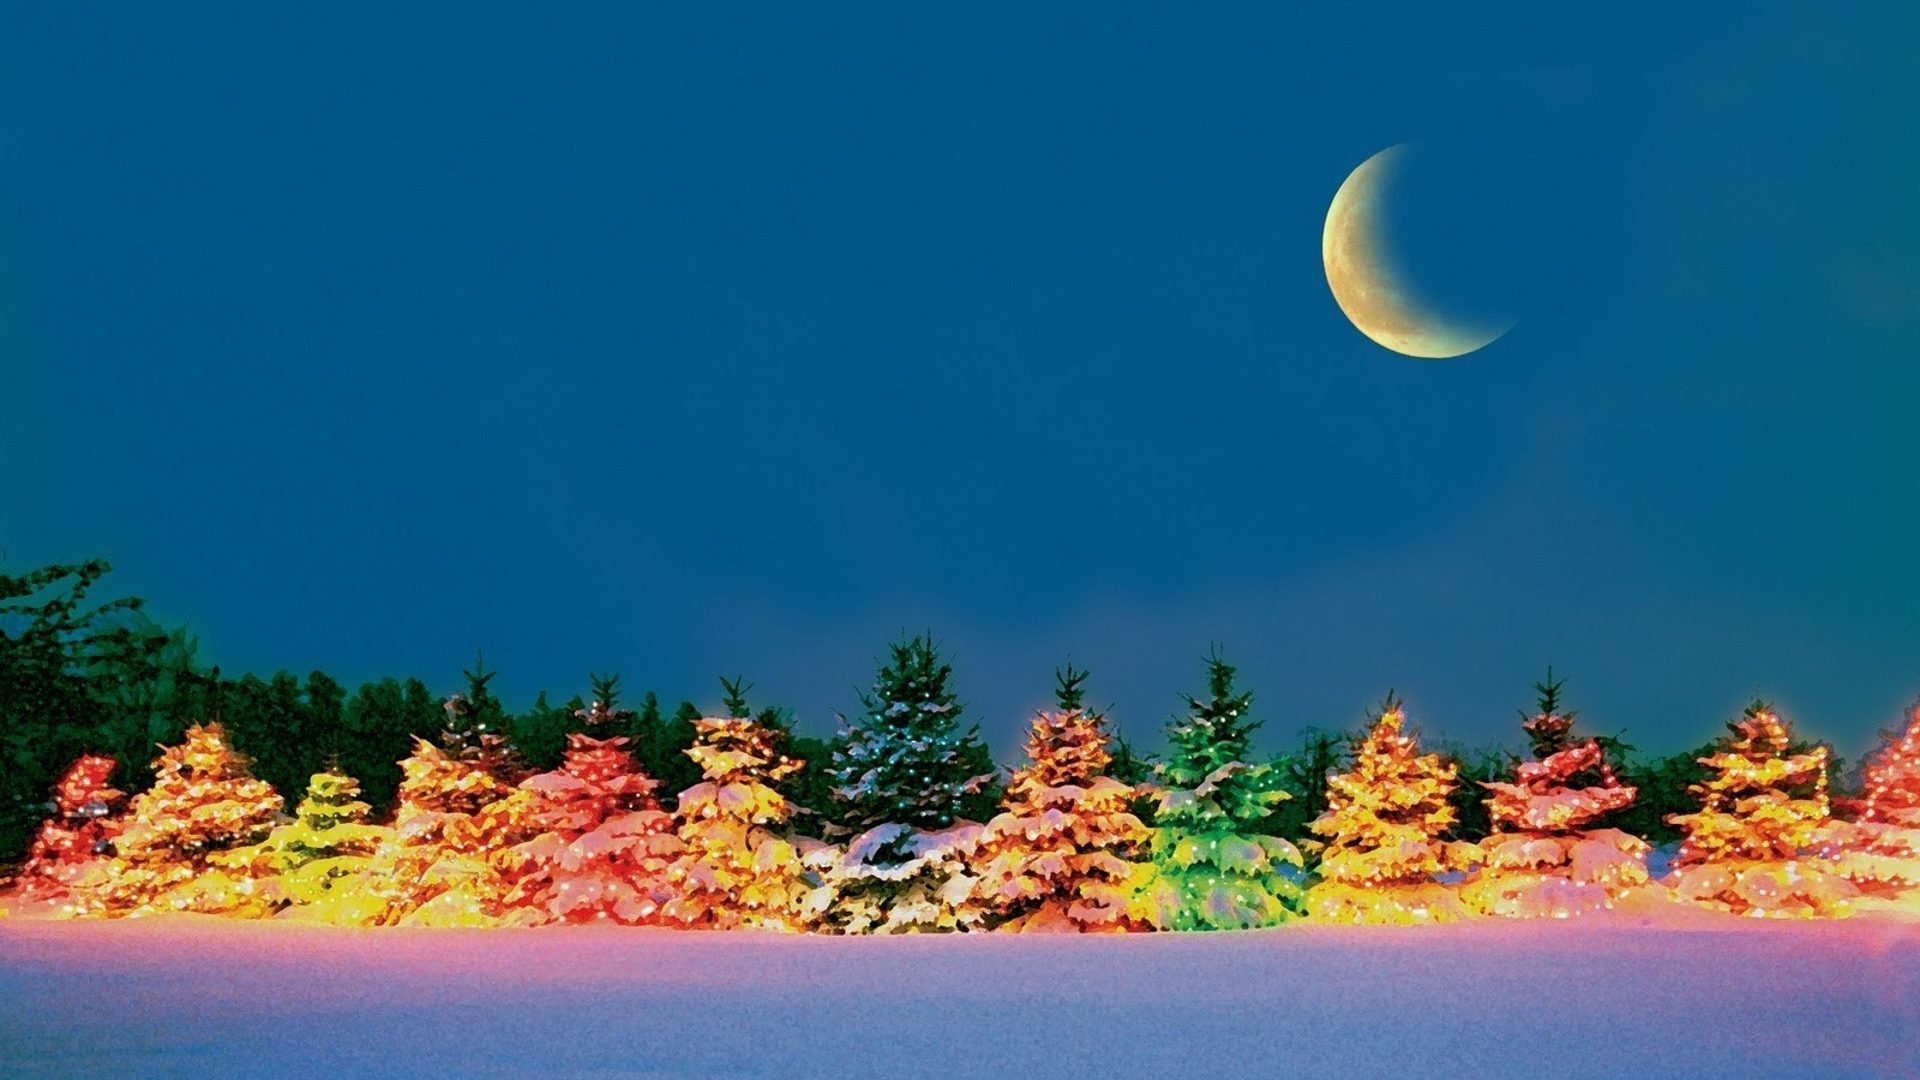 Most Inspiring Wallpaper Night Beauty - colorful-tree-in-the-cold-winter-night-hd-wallpaper-1920x1080  Graphic.jpg